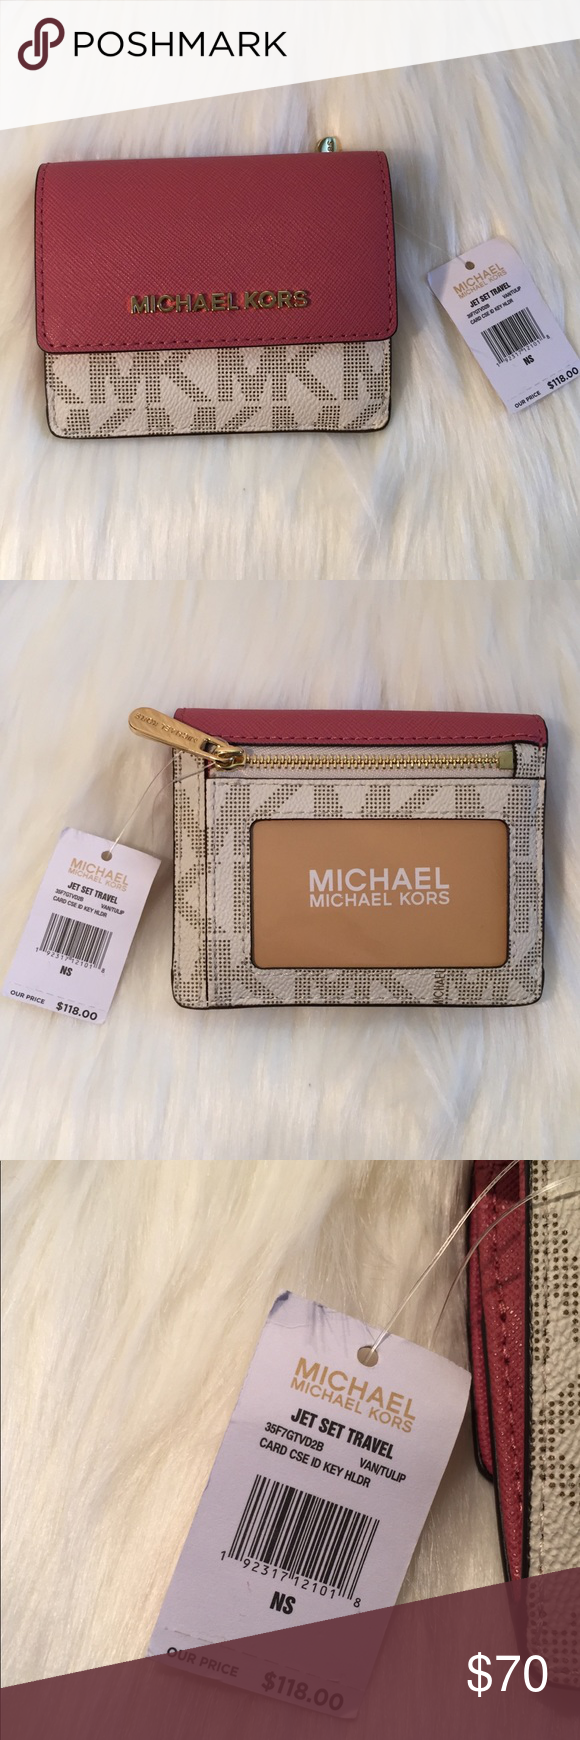 a97dc816a00c3f NEW🌸🐎MICHAEL KORS Card case ID Key Holder Jet Set Travel Card Case ID Hey  Holder Color VAN/TULP Leather MICHAEL Michael Kors Bags Wallets